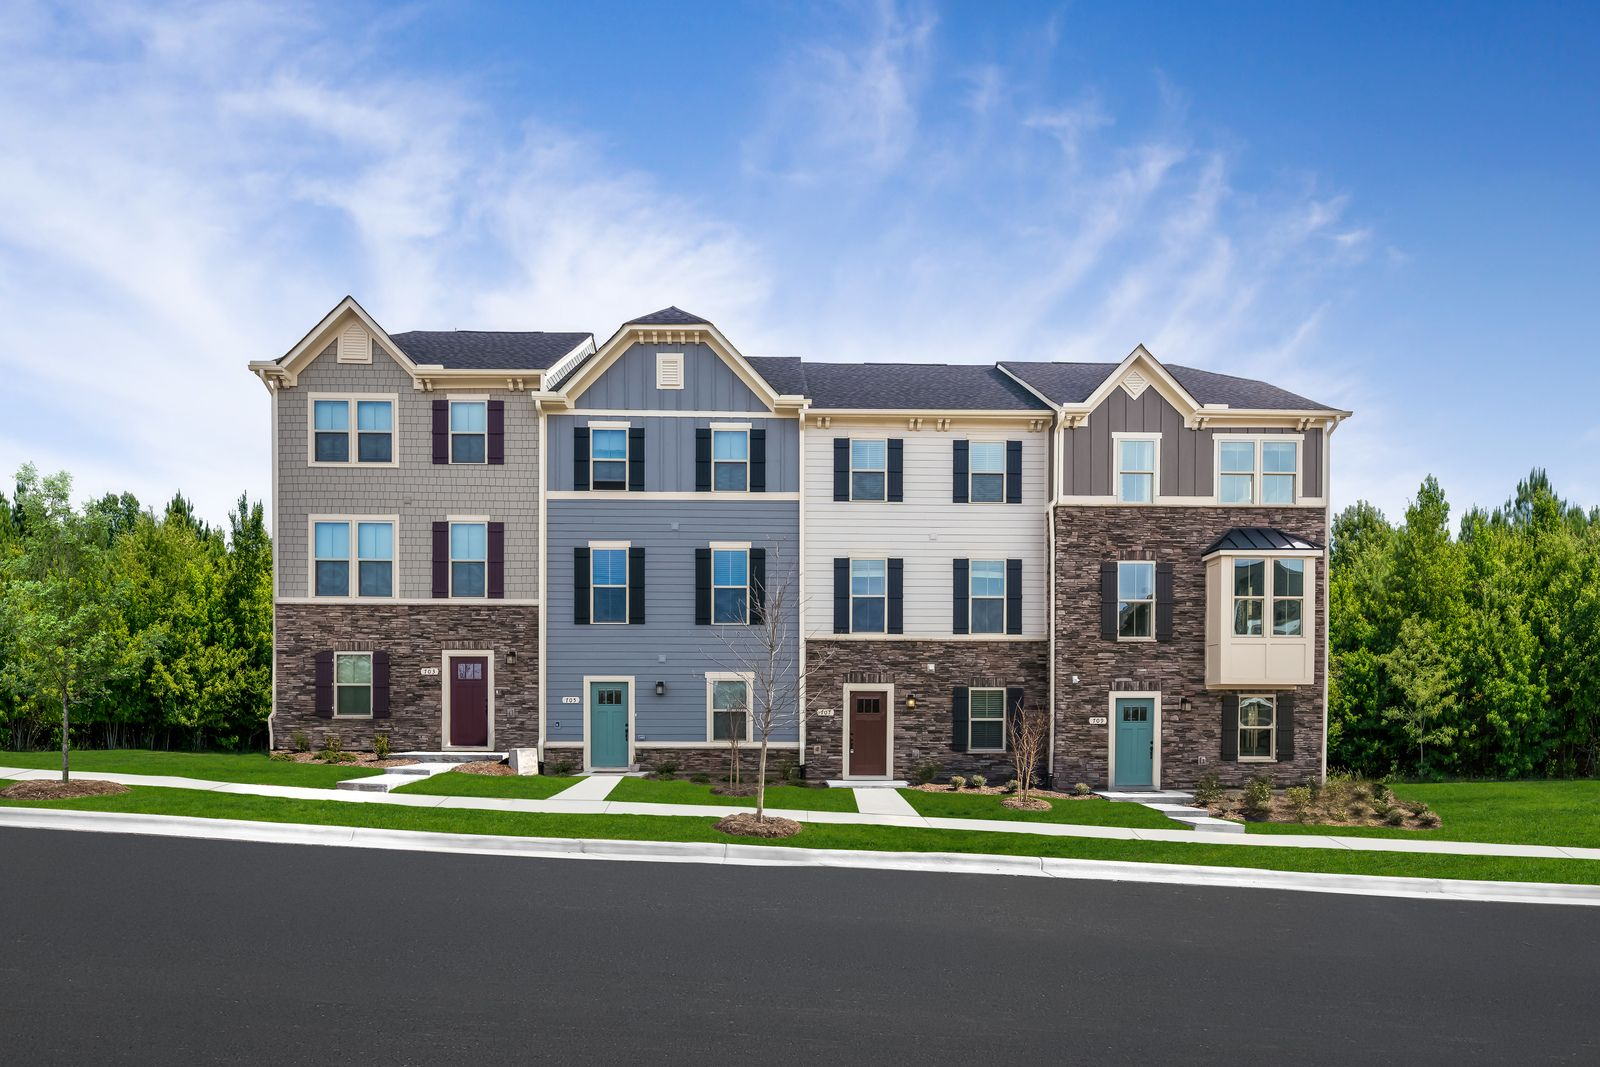 Introducing brand townhomes in the highly sought after, conveniently located & amenity rich community of Forest Lakes, from the $300s!Join the VIP List today!